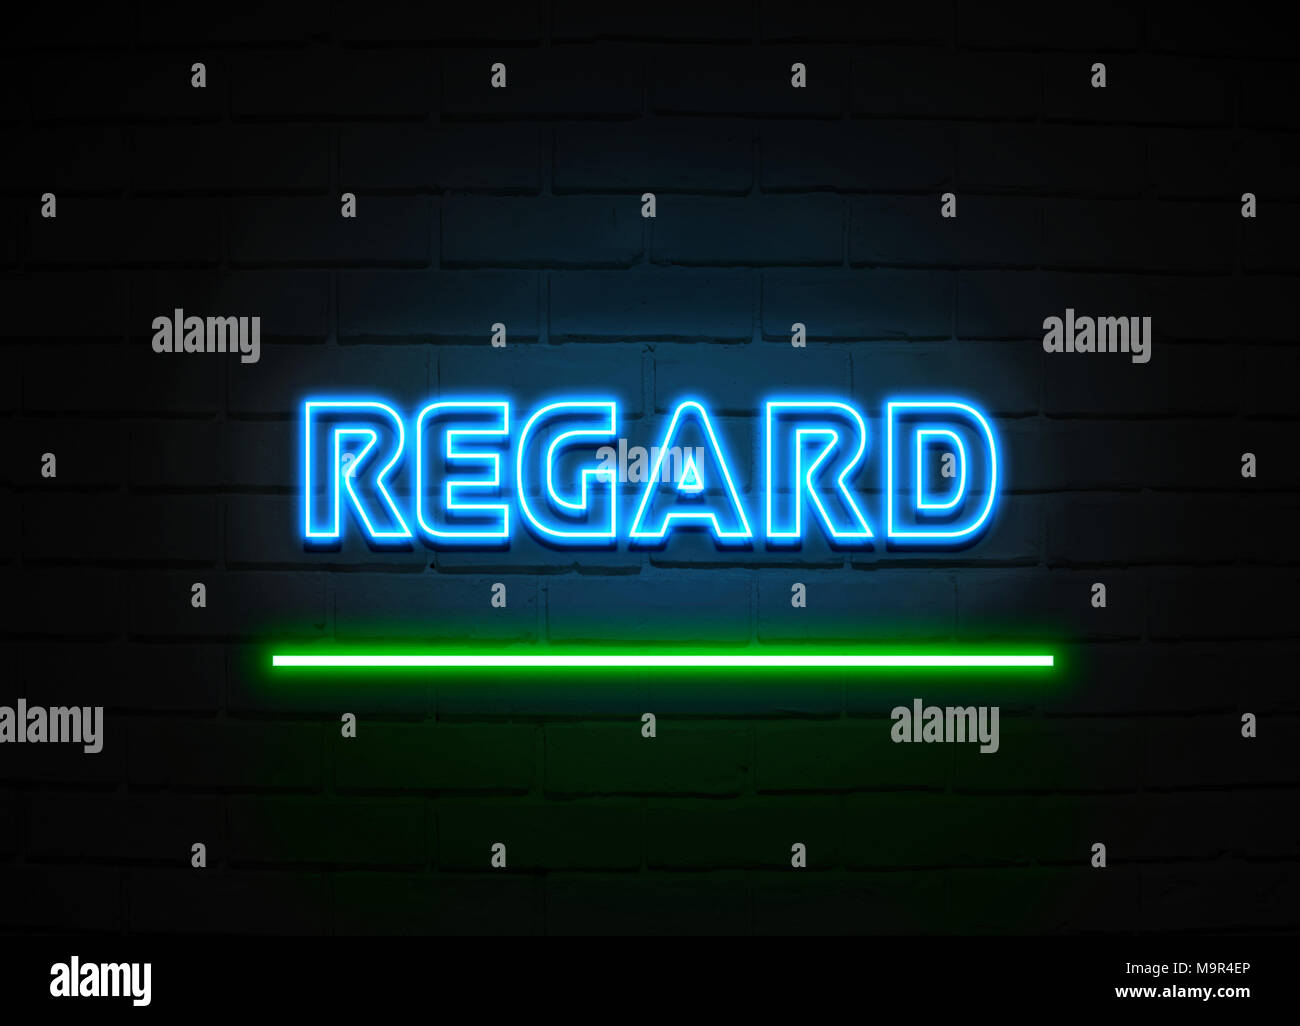 Regard neon sign - Glowing Neon Sign on brickwall wall - 3D rendered royalty free stock illustration. - Stock Image